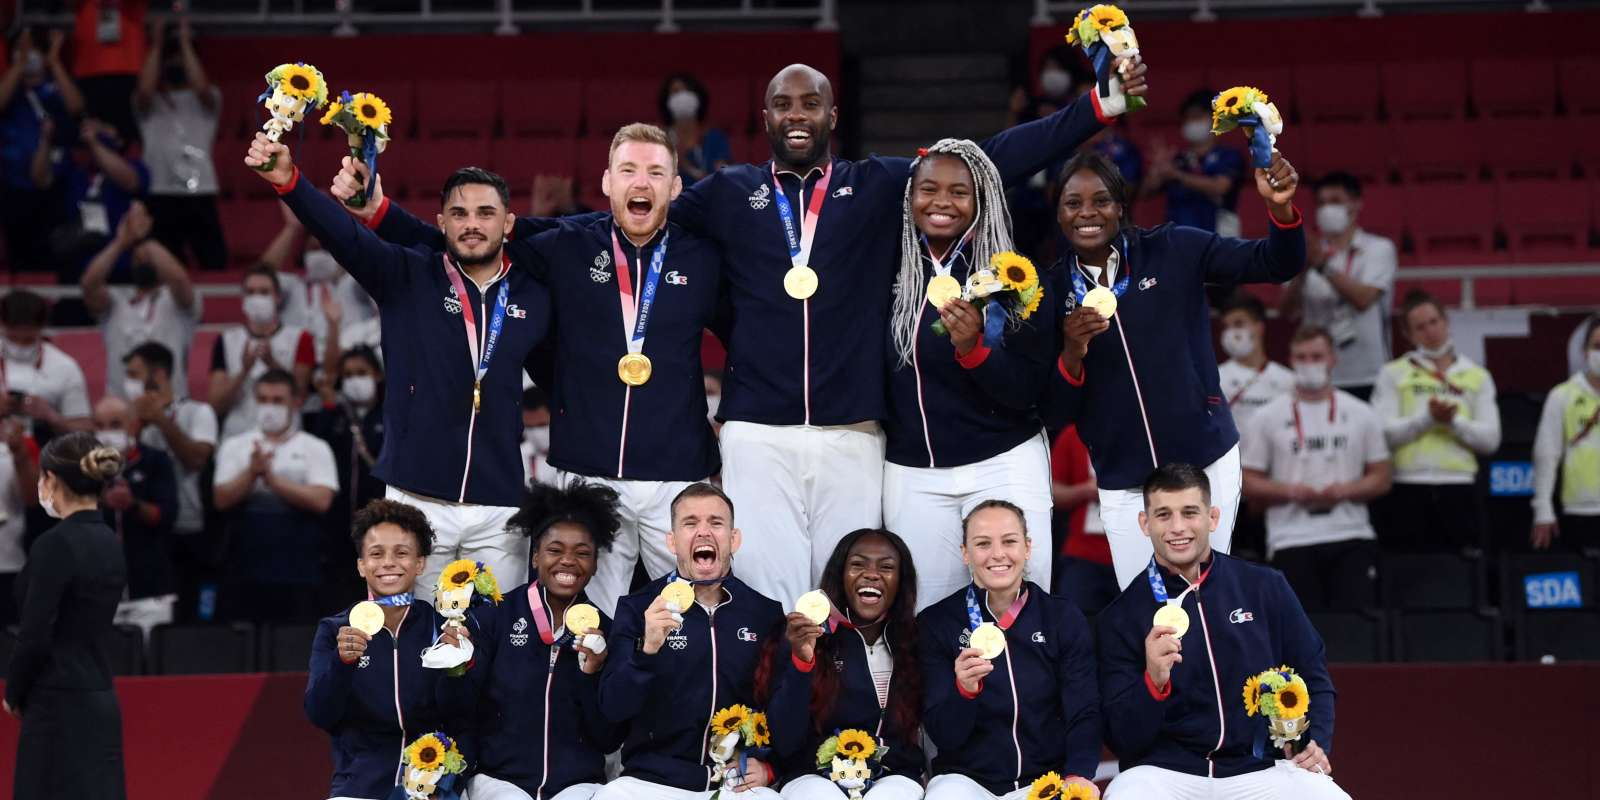 TOPSHOT - Team France poses with the gold medal during the podium ceremony for the judo mixed team of the Tokyo 2020 Olympic Games at the Nippon Budokan in Tokyo on July 31, 2021. (Photo by Franck FIFE / AFP)